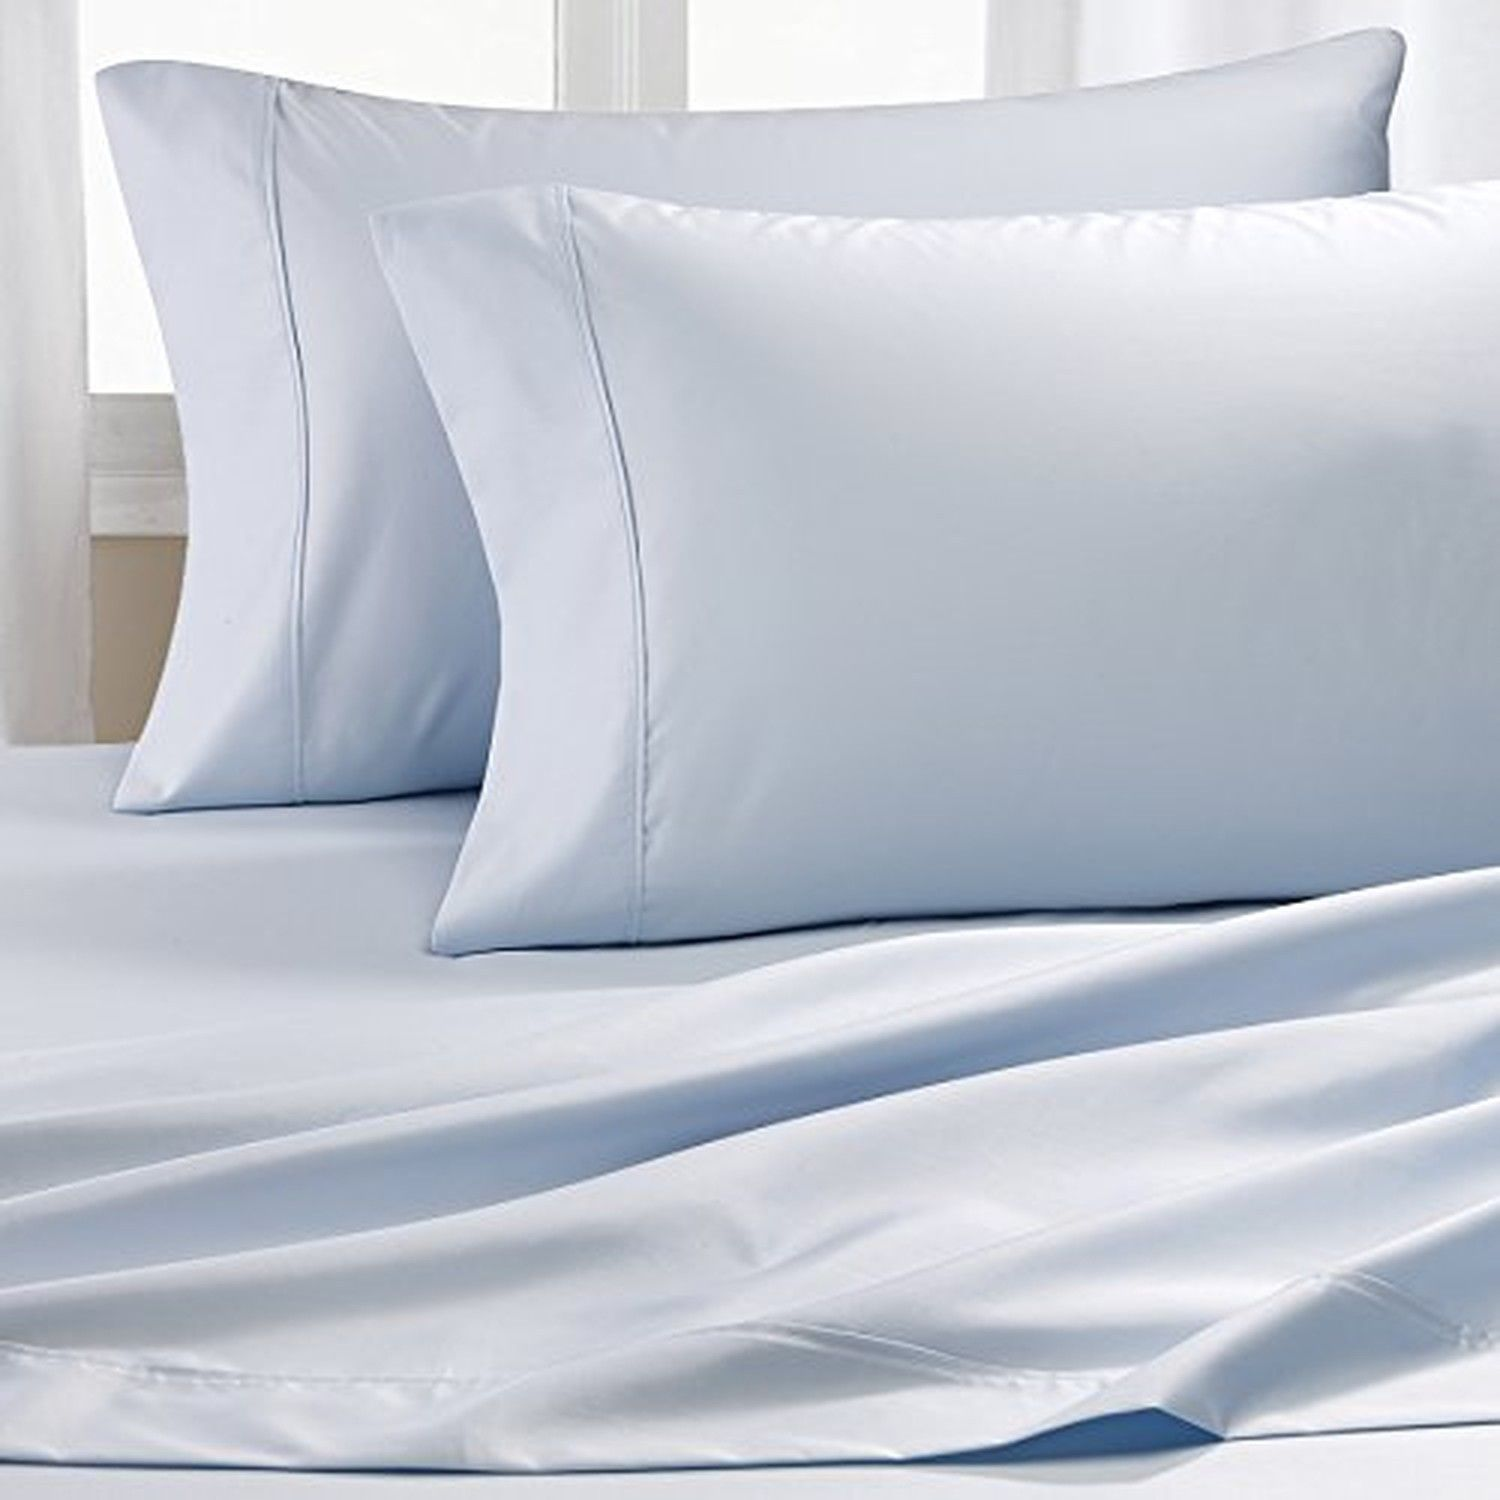 Fieldcrest Luxury Sheets | Target Fieldcrest Sheets | Target 1000 Thread Count Sheets